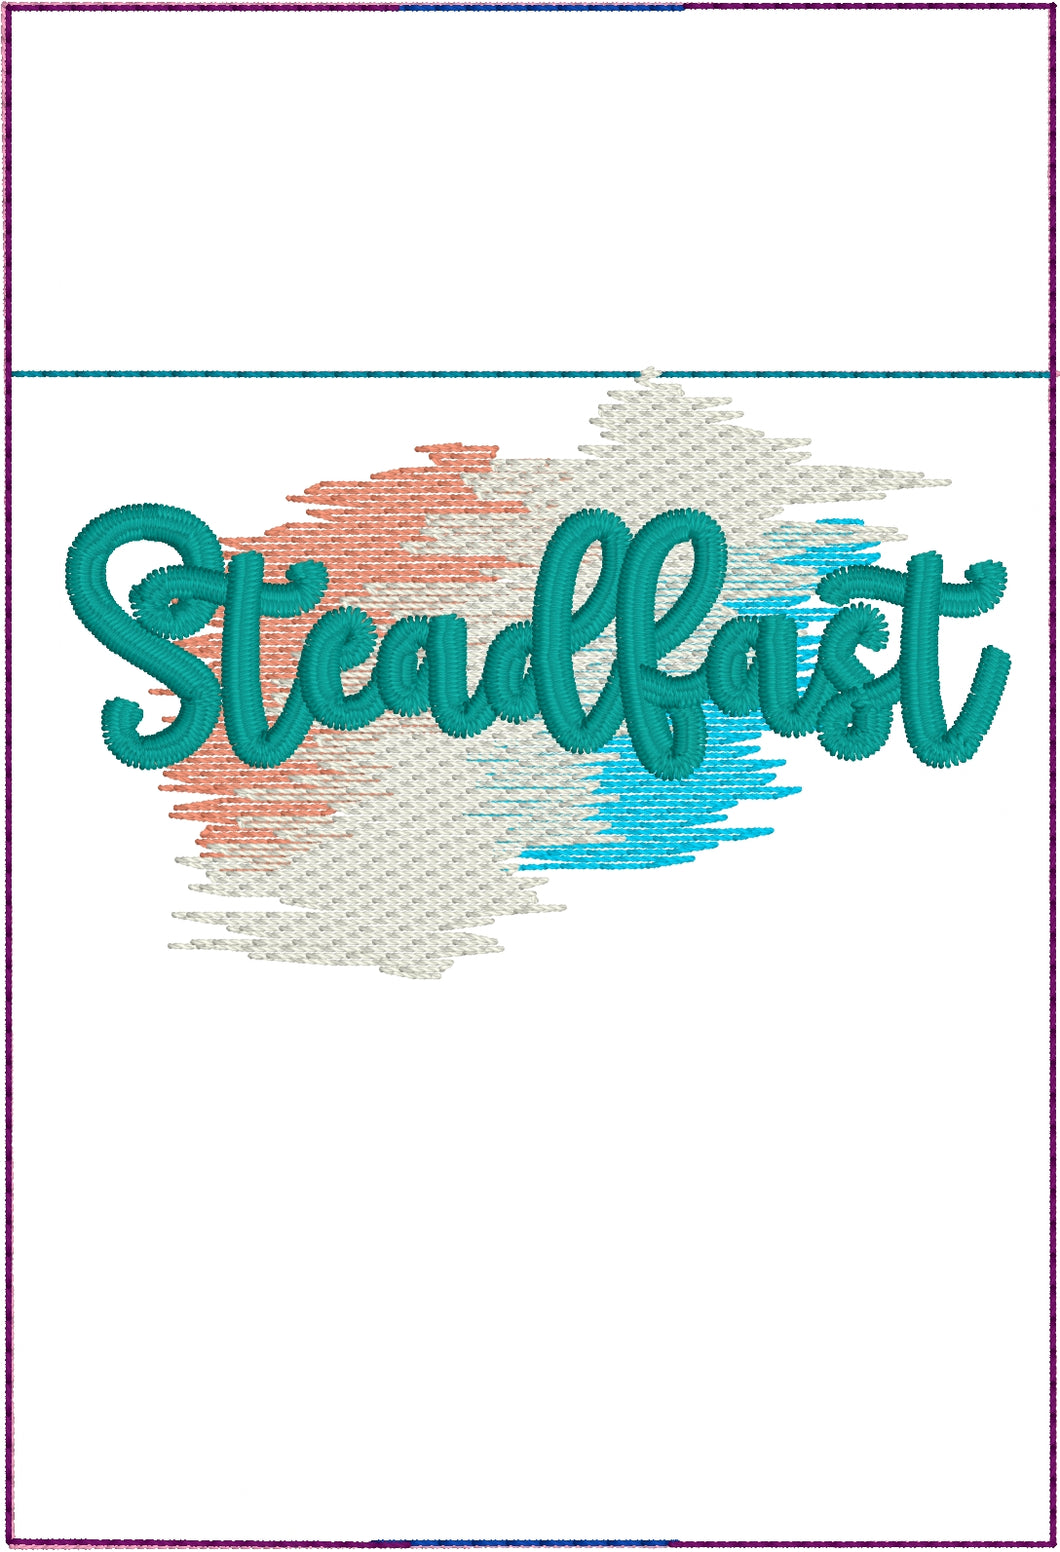 Steadfast Pen Pocket In The Hoop (ITH) Embroidery Design